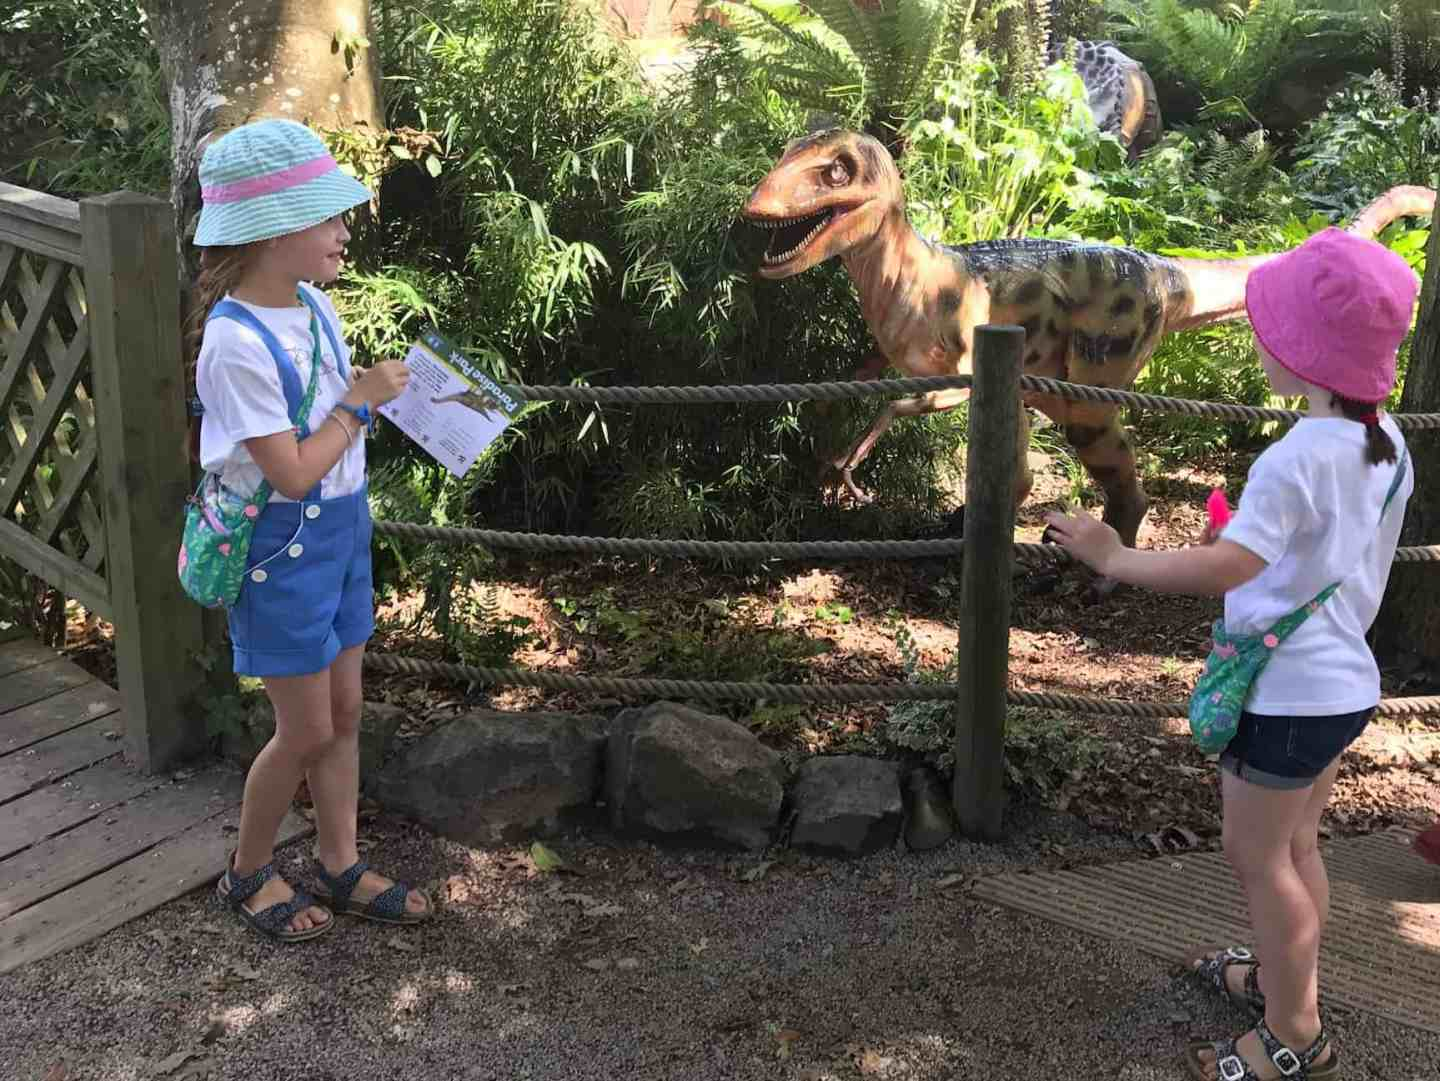 Ava and Thea meet a dinosaur